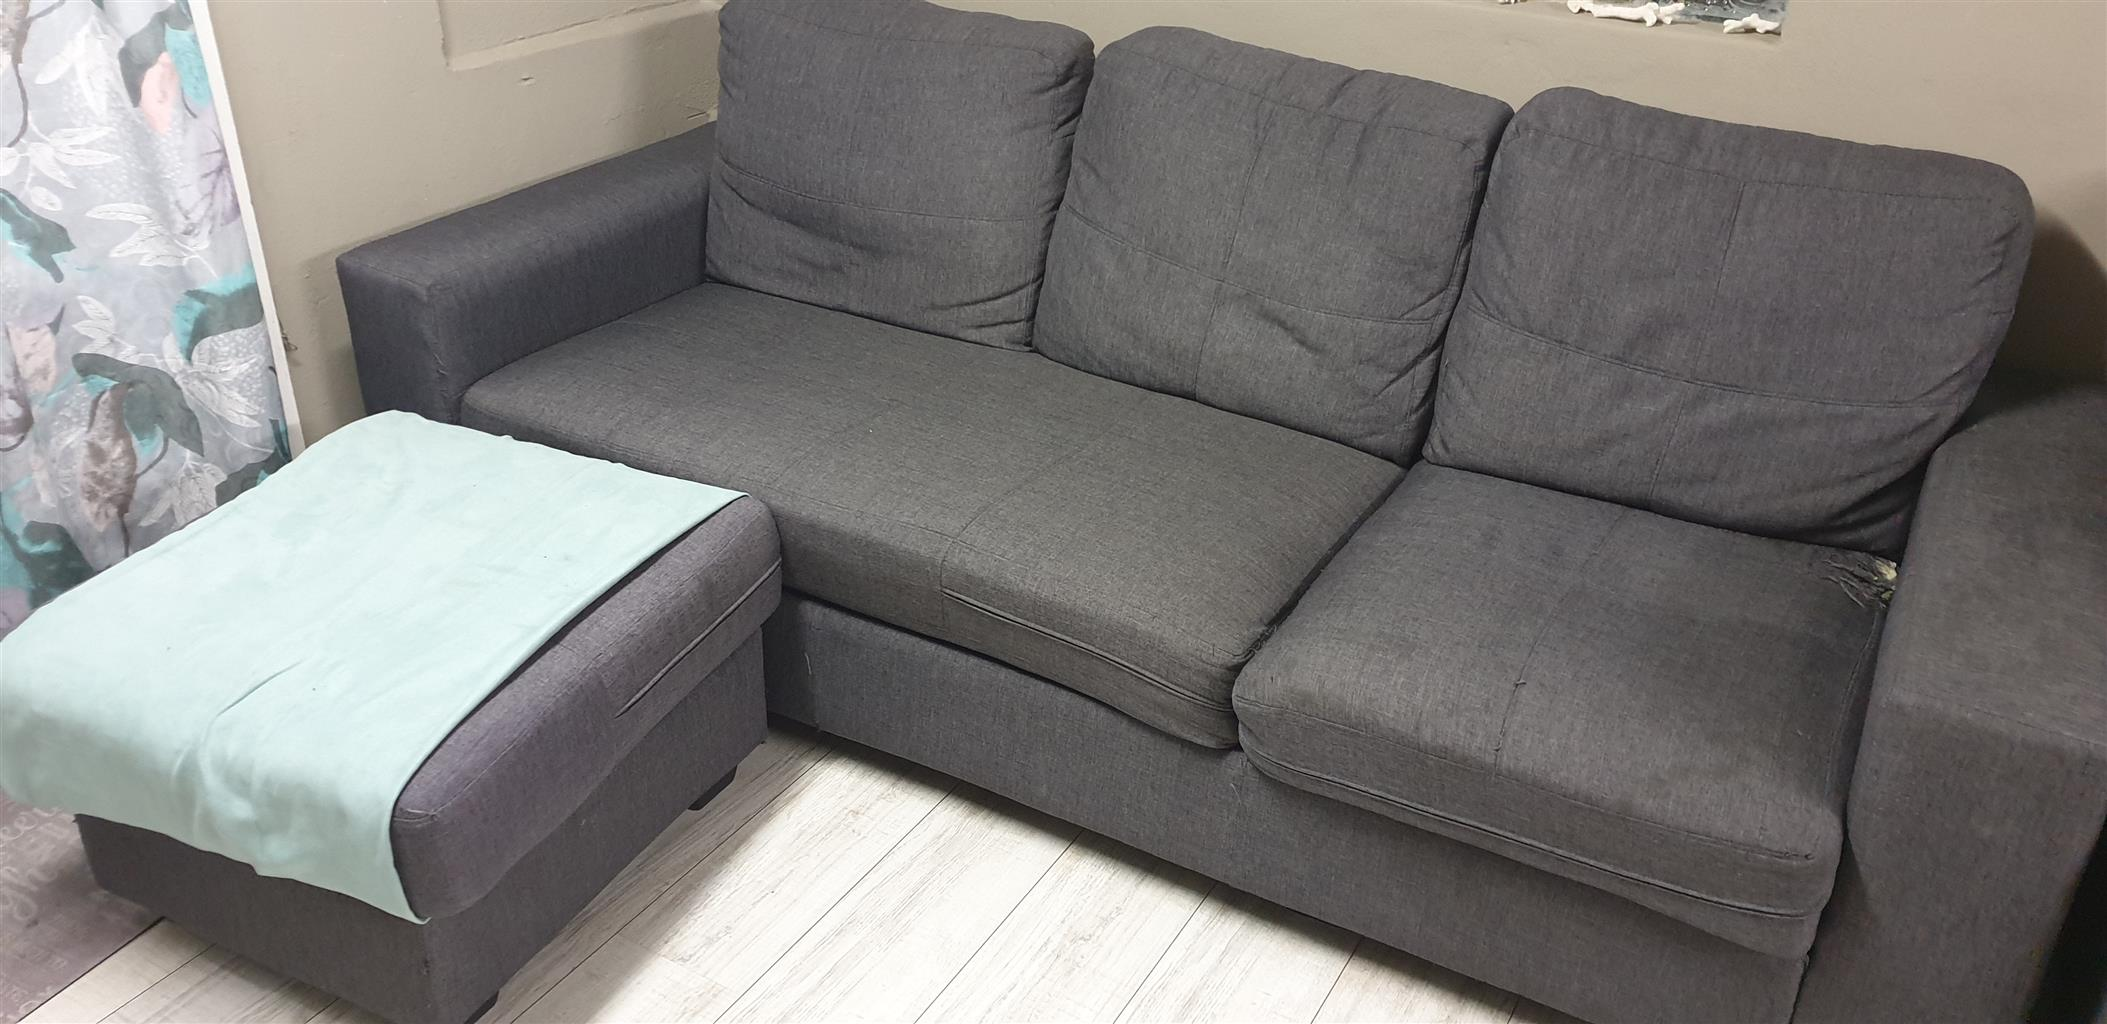 3 1/2 Used grey seater couch 2 years old